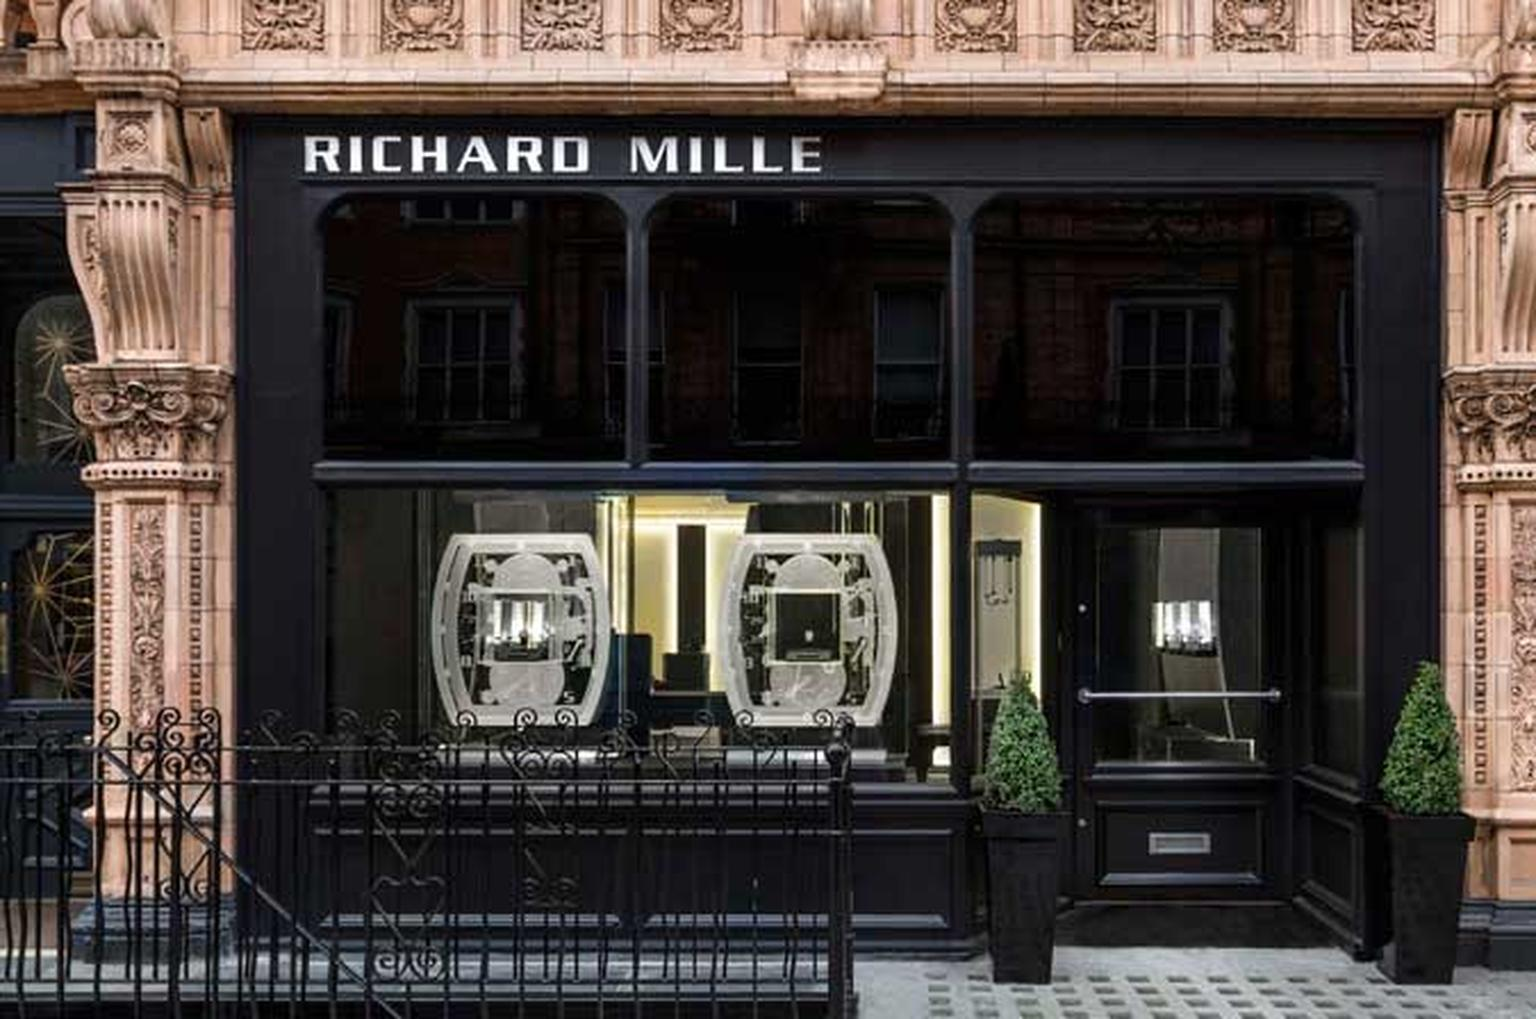 Richard Milleboutique 004HP